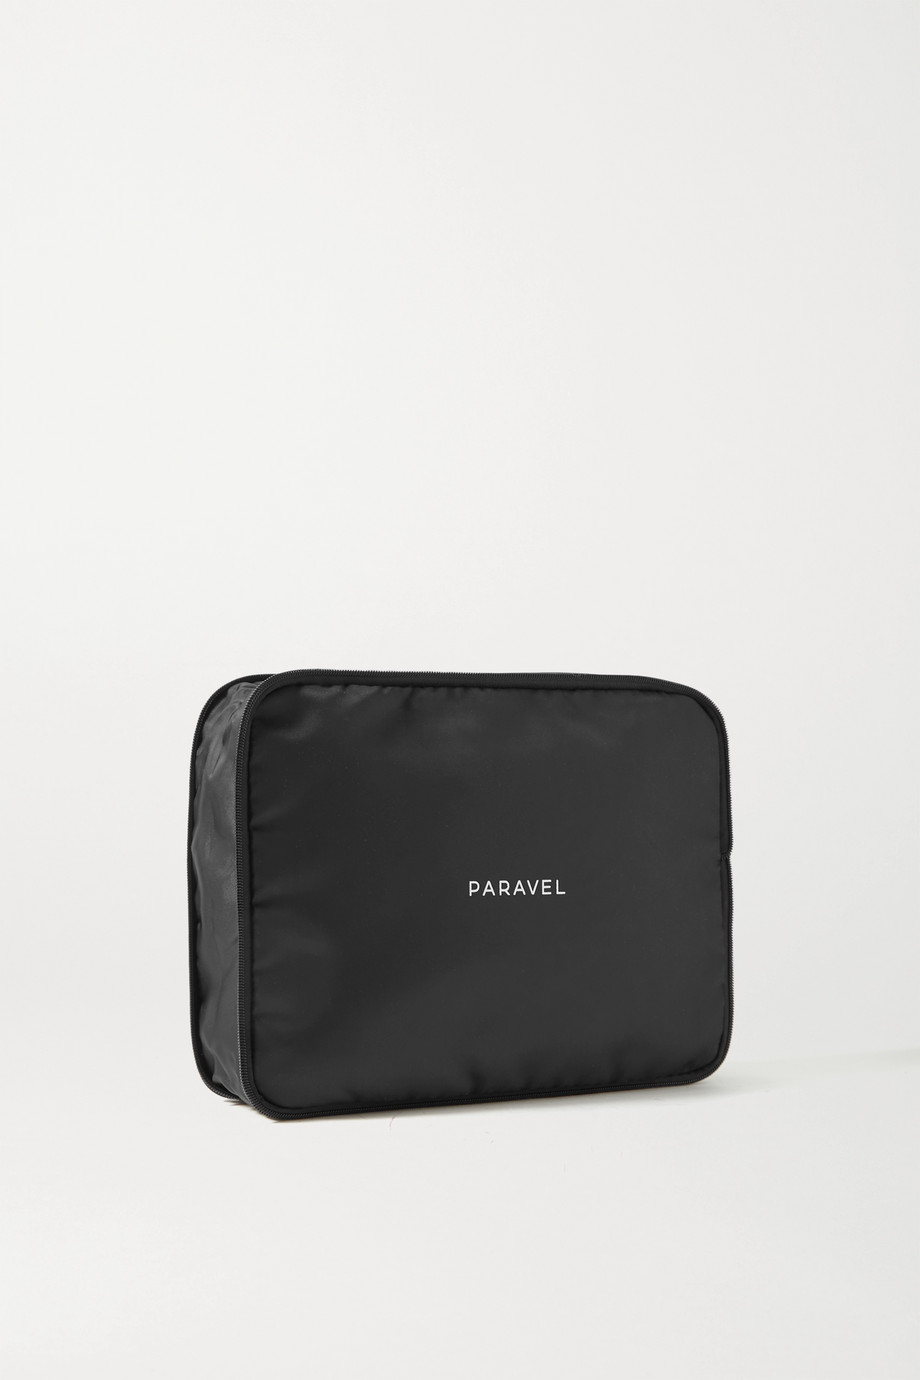 Paravel Set of two PVC-trimmed shell packing cubes